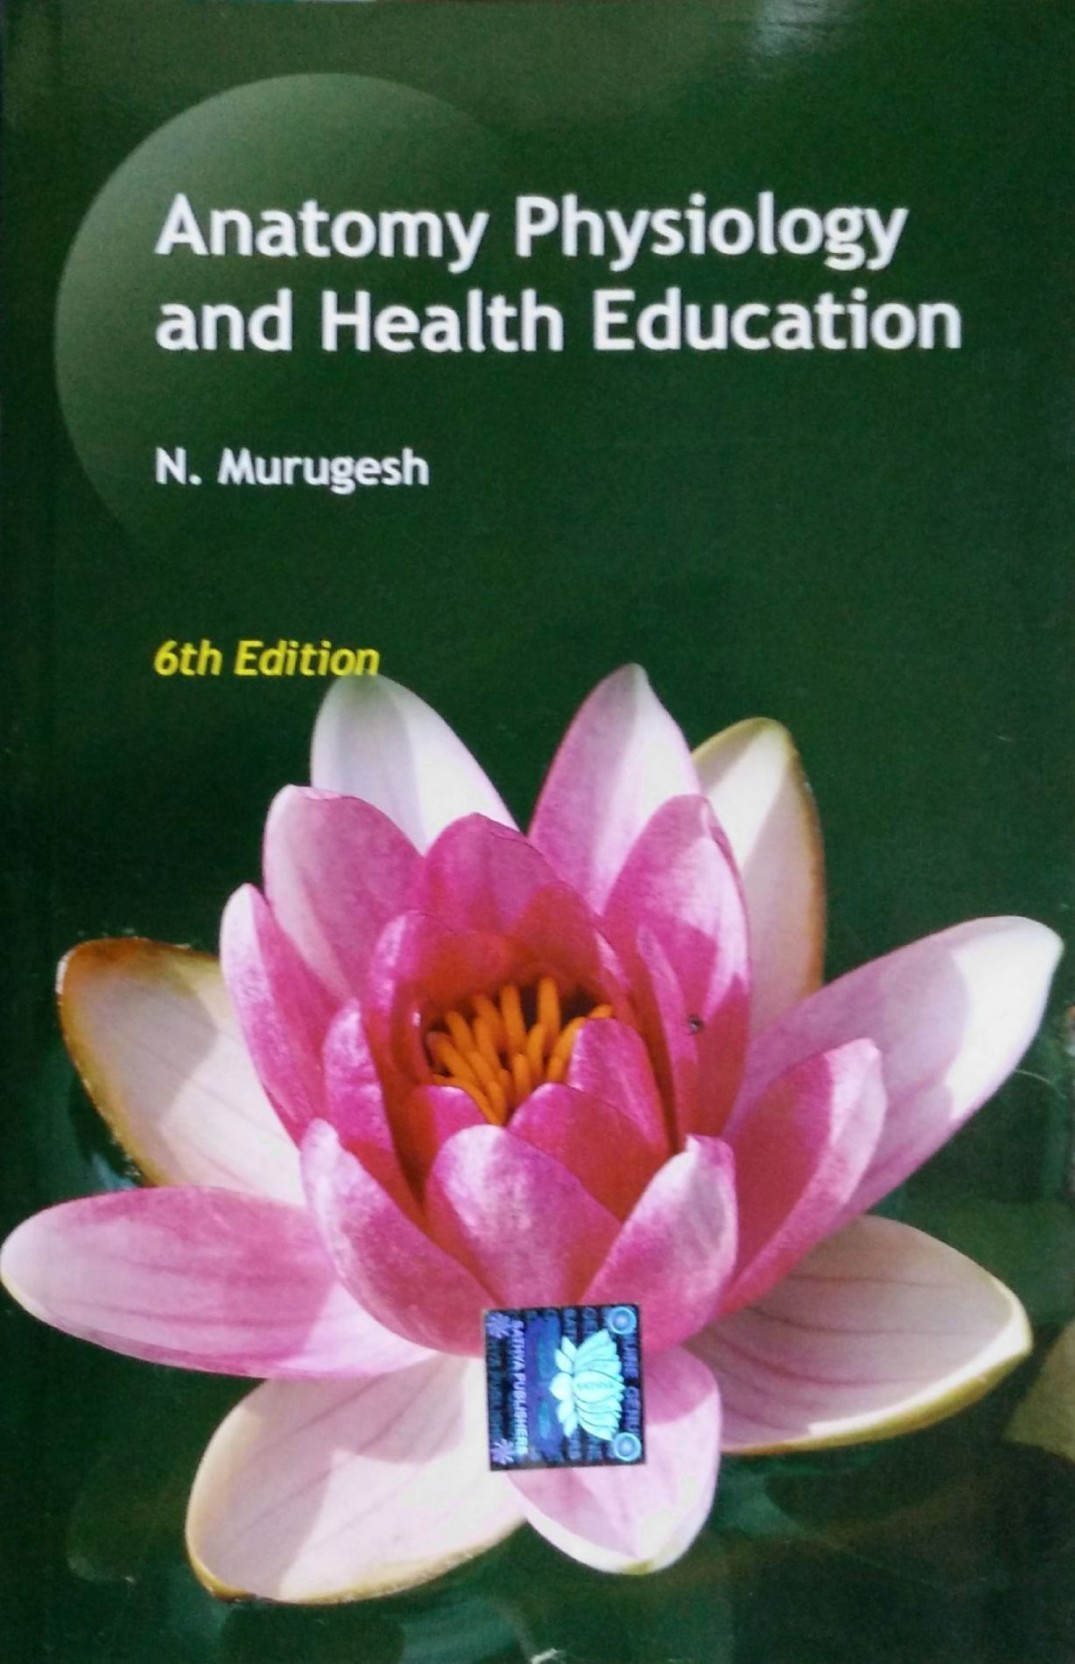 Anatomy Physiology And Health Education: Buy Anatomy Physiology And ...